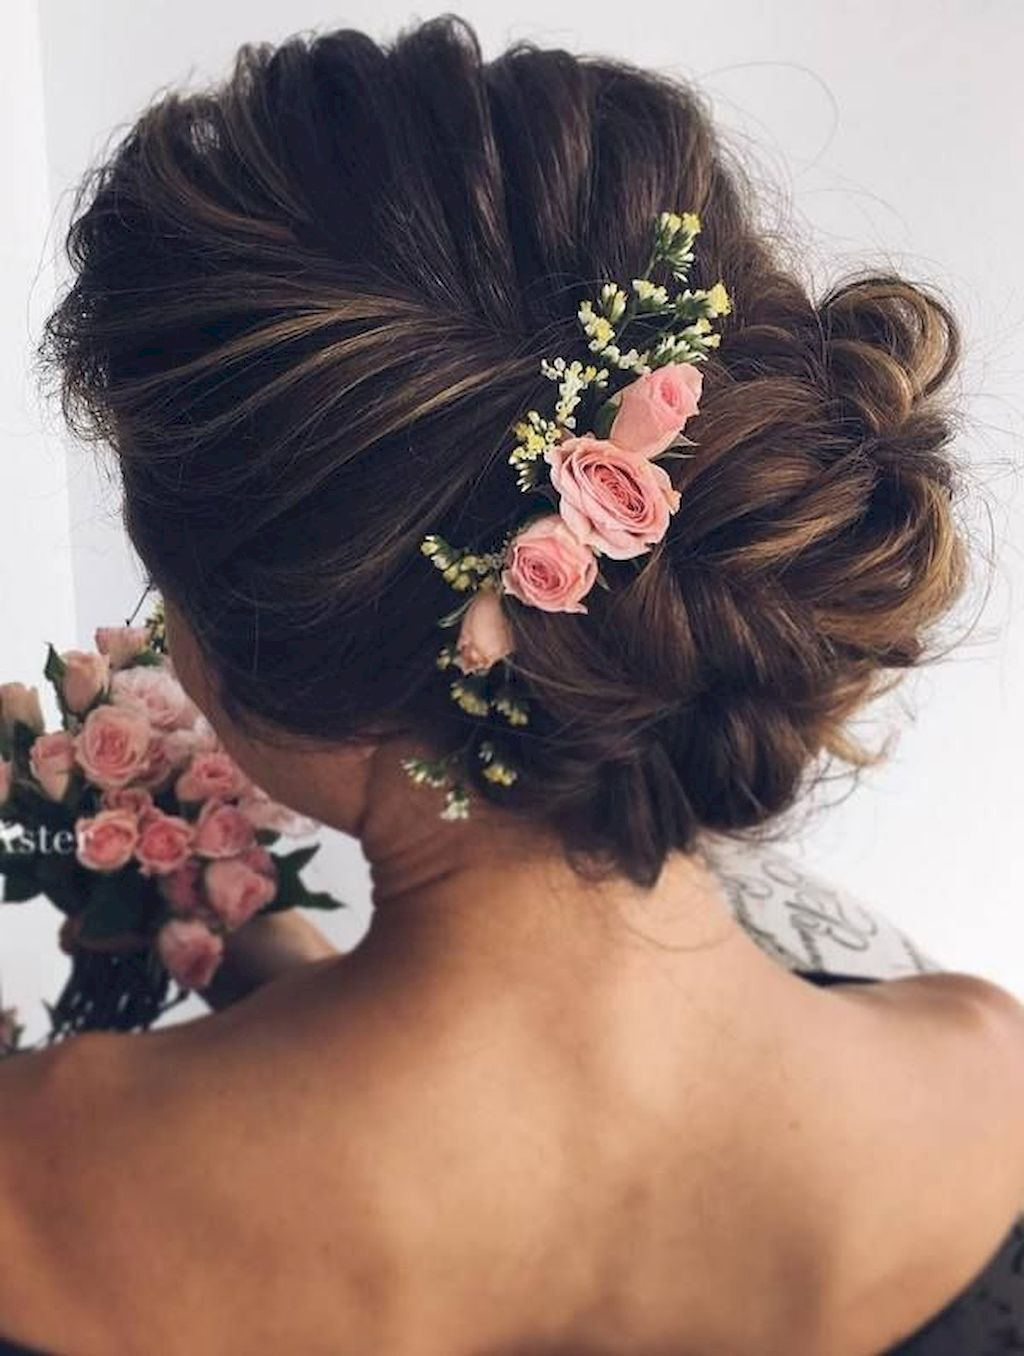 Bridal Wedding Hairstyles For Long Hair that will Inspire Updo